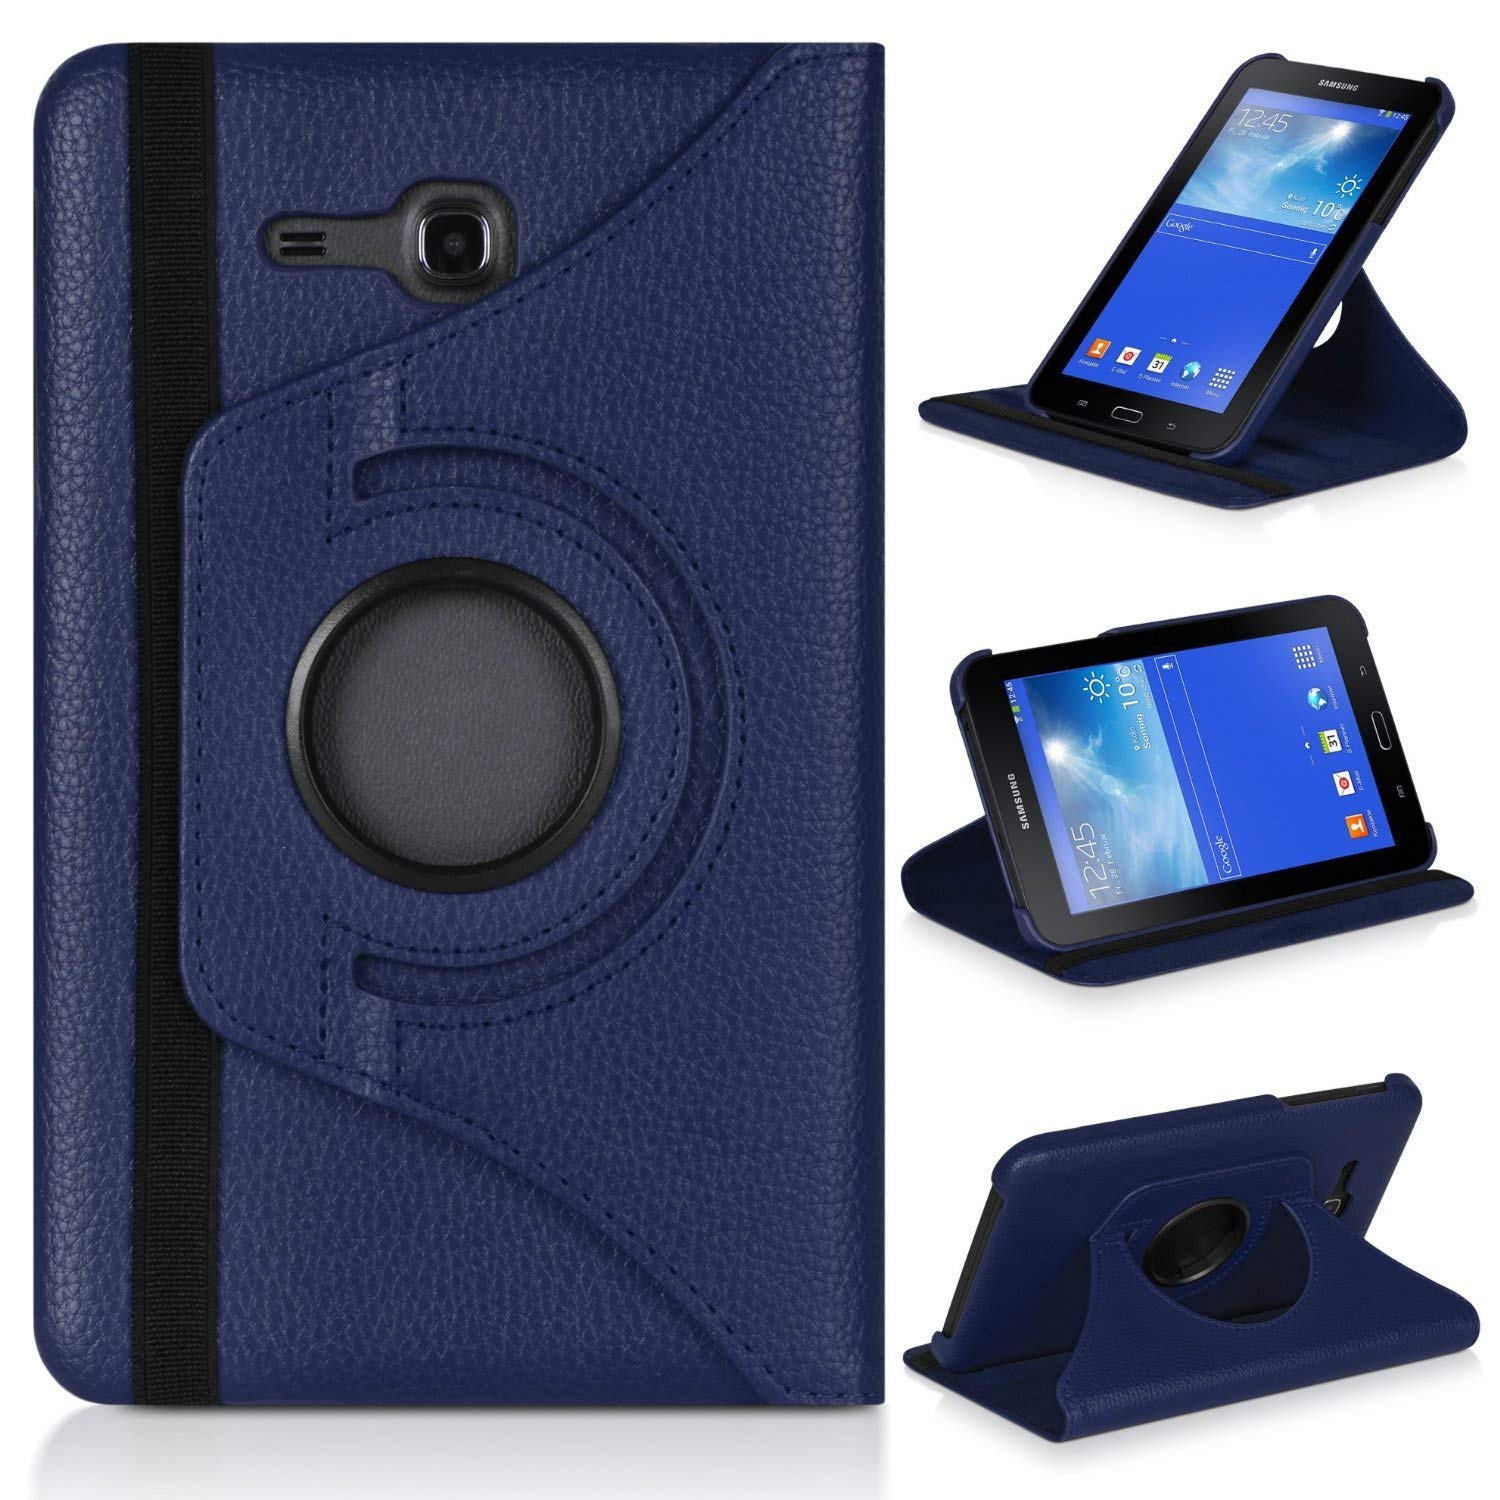 Funda Capa Cover For Galaxy Tab E 7.0 Lite SM-T113 360 Rotation Holder Case for Samsung Tab3 Lite 7